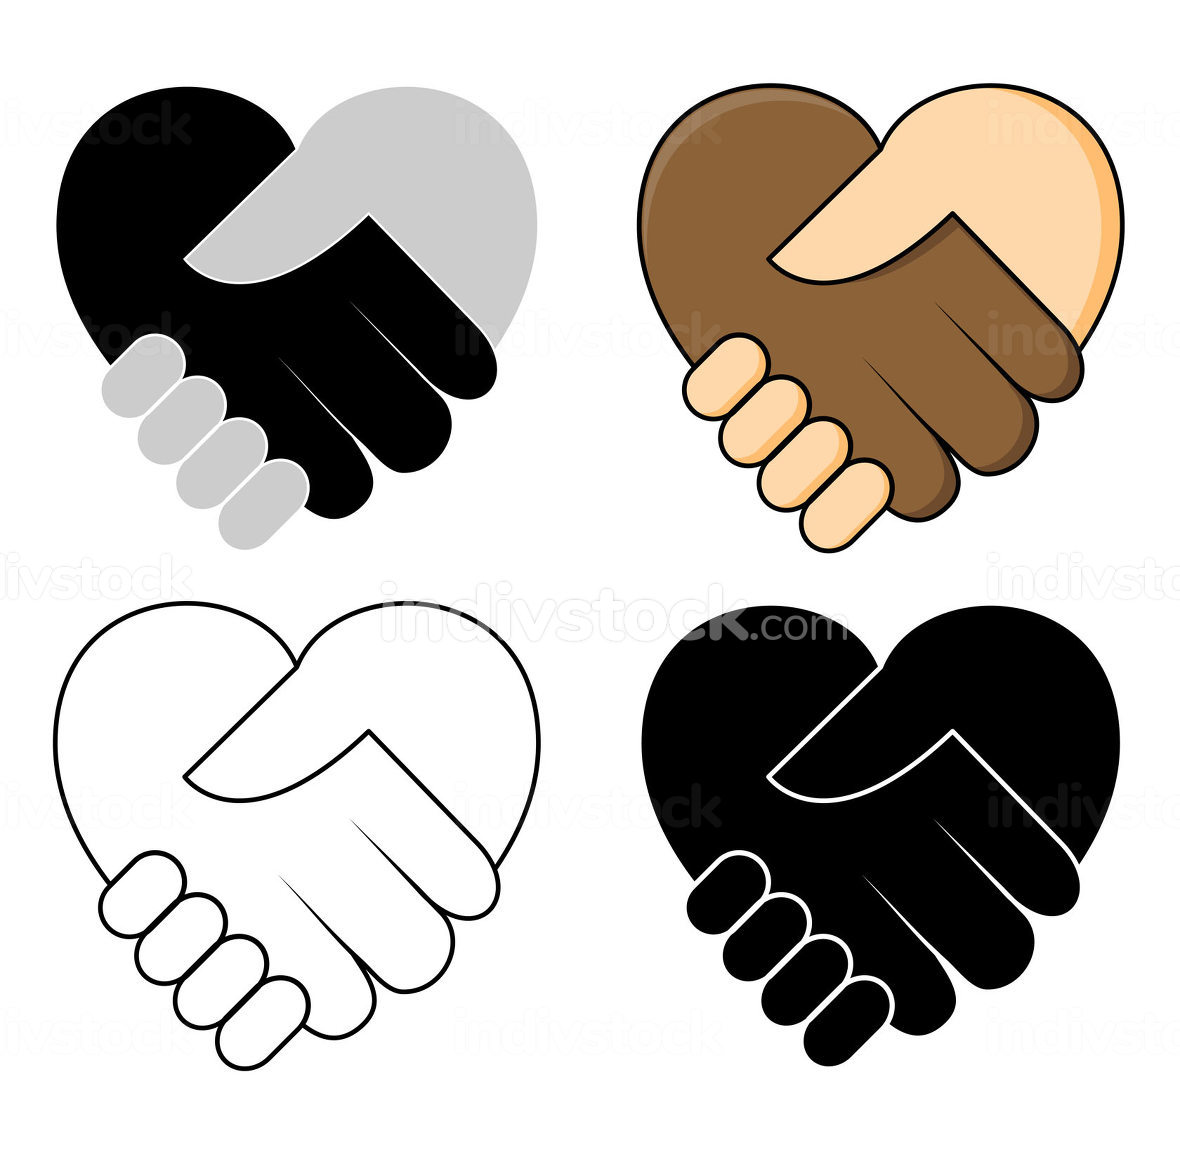 Shake hand in heart shape-No racism concept icon set. Two hand